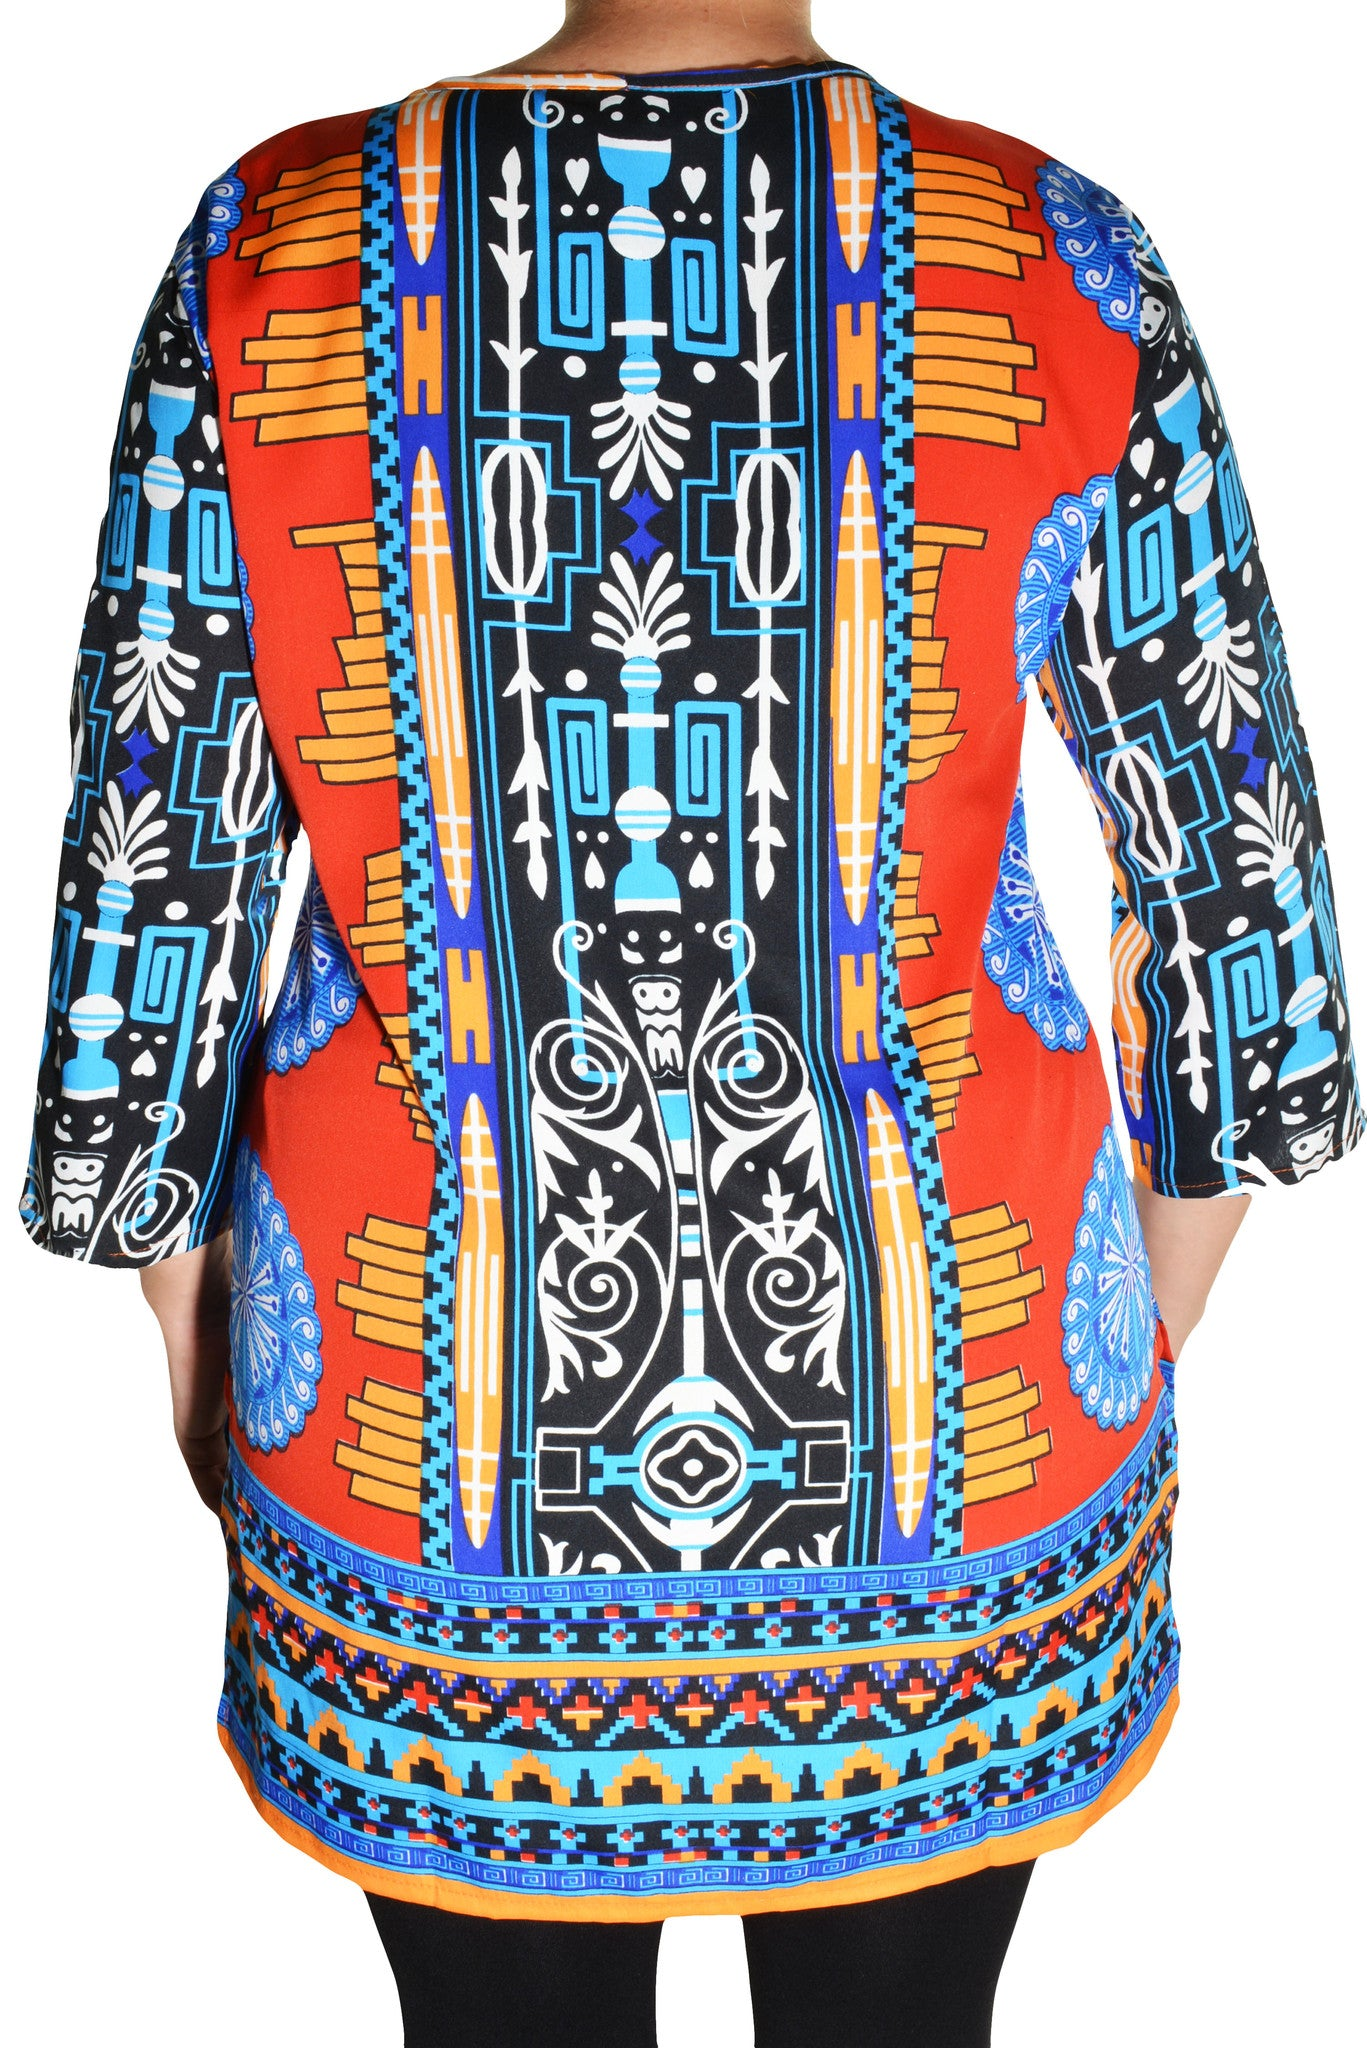 Highness Womens Plus Size Geometric Henley Tunic Shirt (Red Multi)